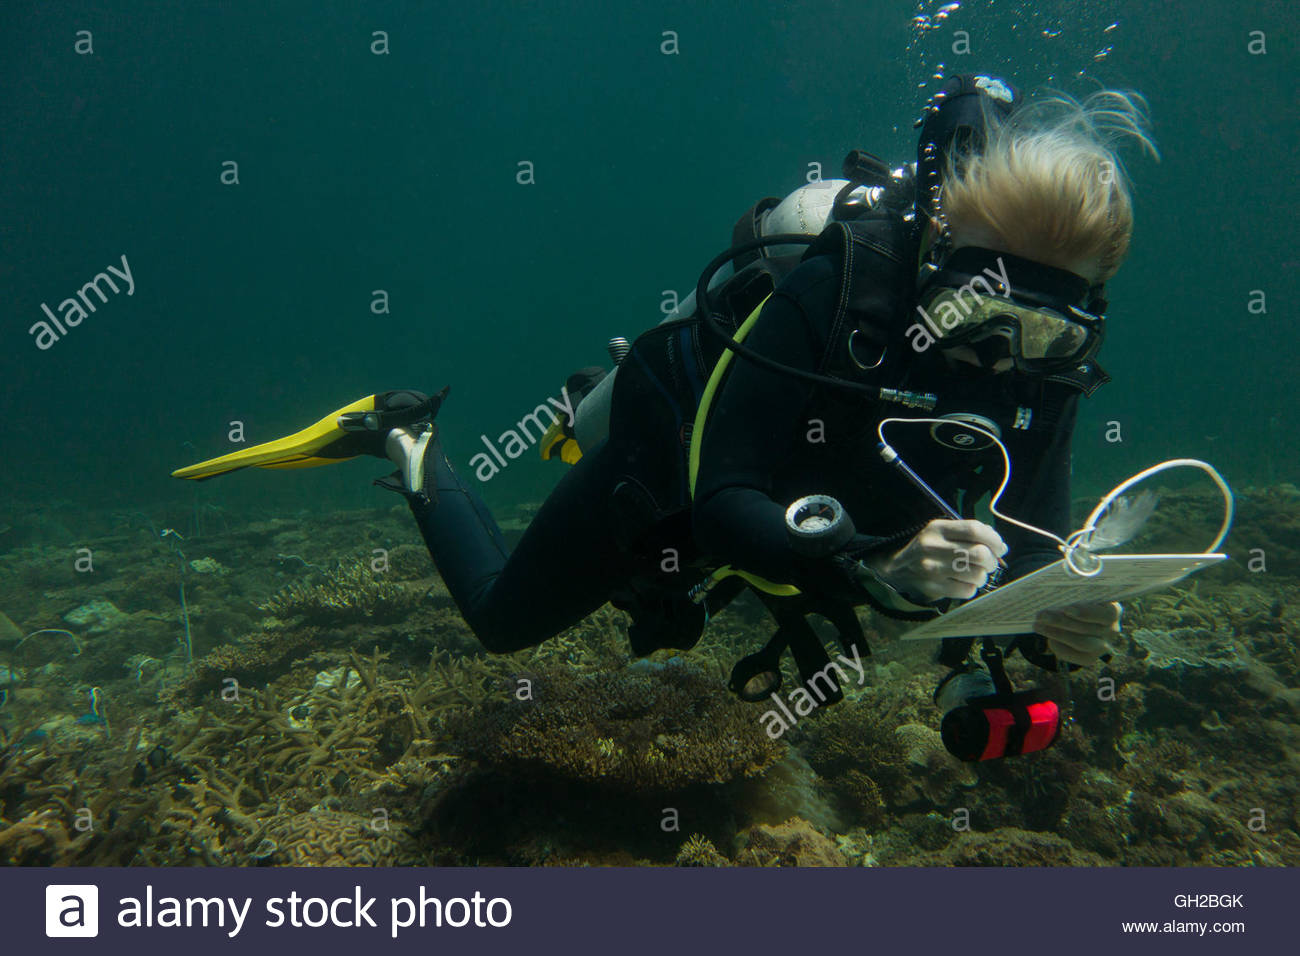 Diver during underwater data collection on coral reefs in Brunei, South East Asia. - Stock Image